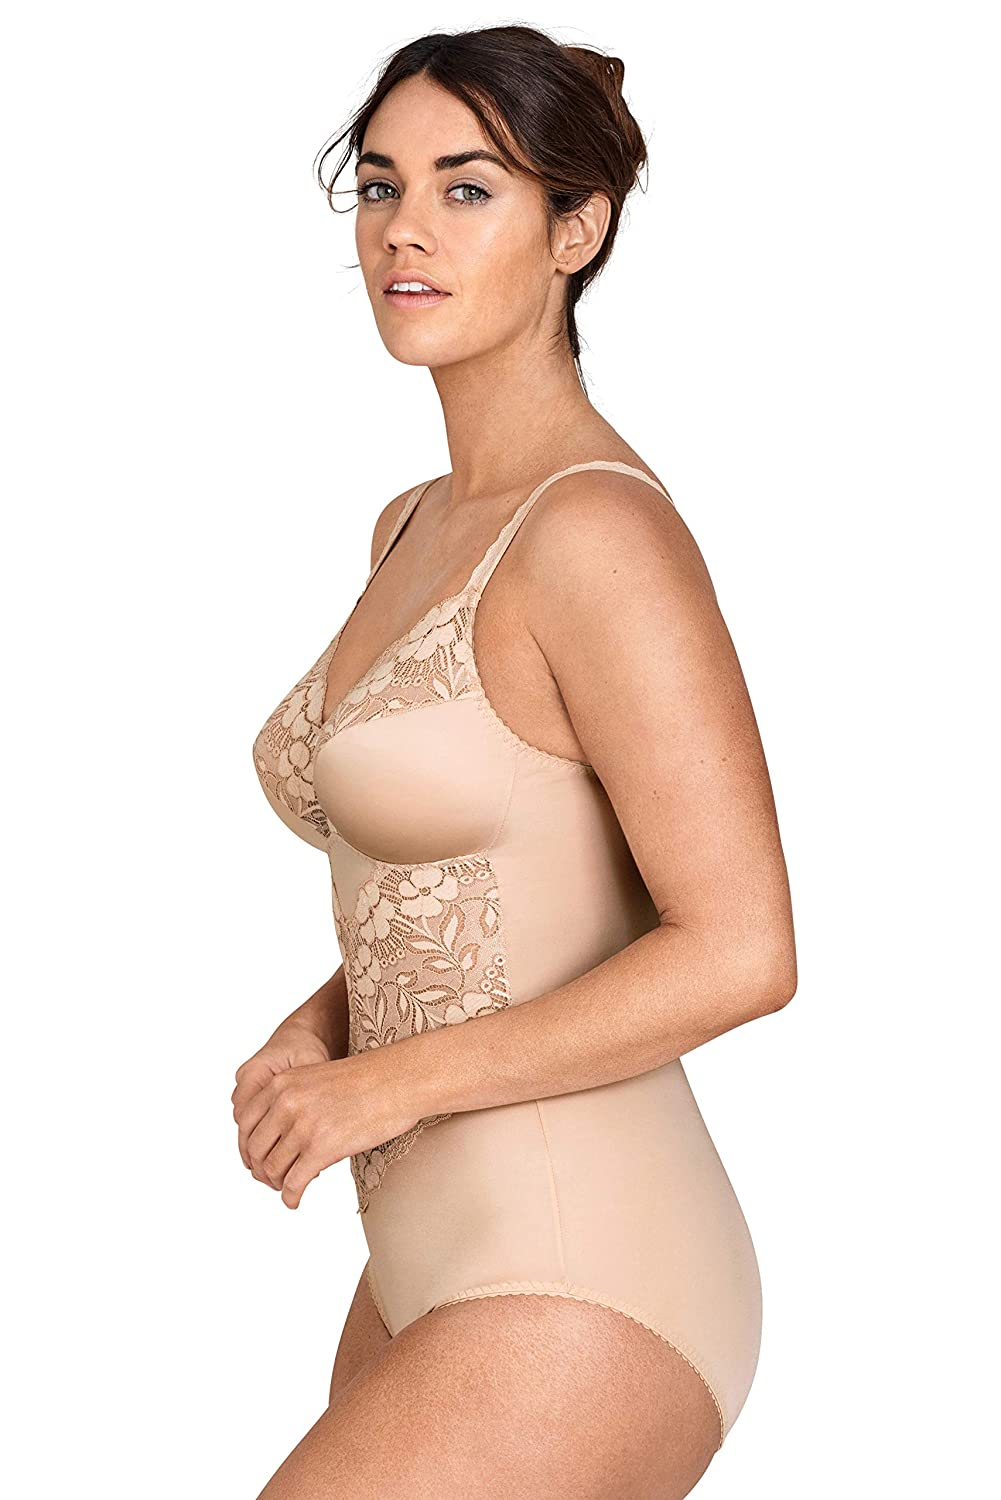 The Best Body Shaping Slimming Support Body Shaper Keep Fresh White Material 46c One Only Shapewear